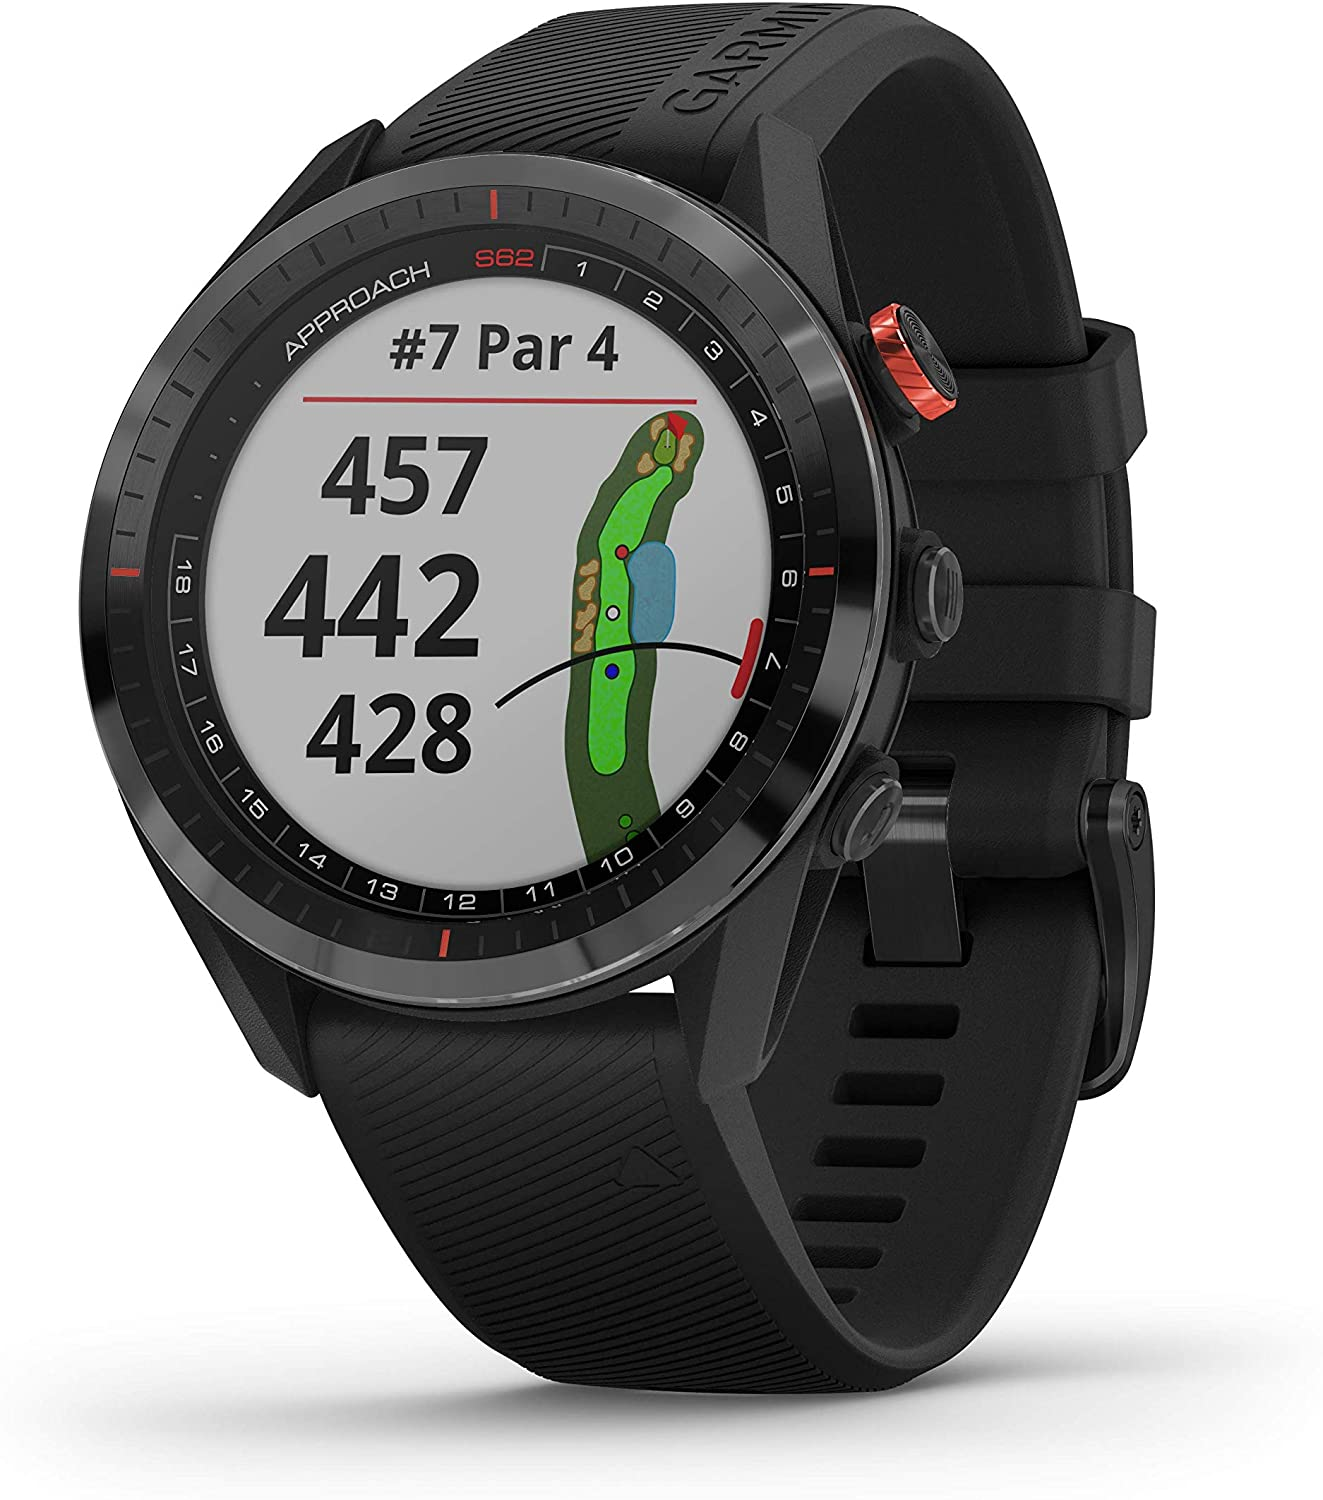 Garmin Approach S62 Smartwatch Golf Black: Amazon.de: Elektronik - Golfuhren Test